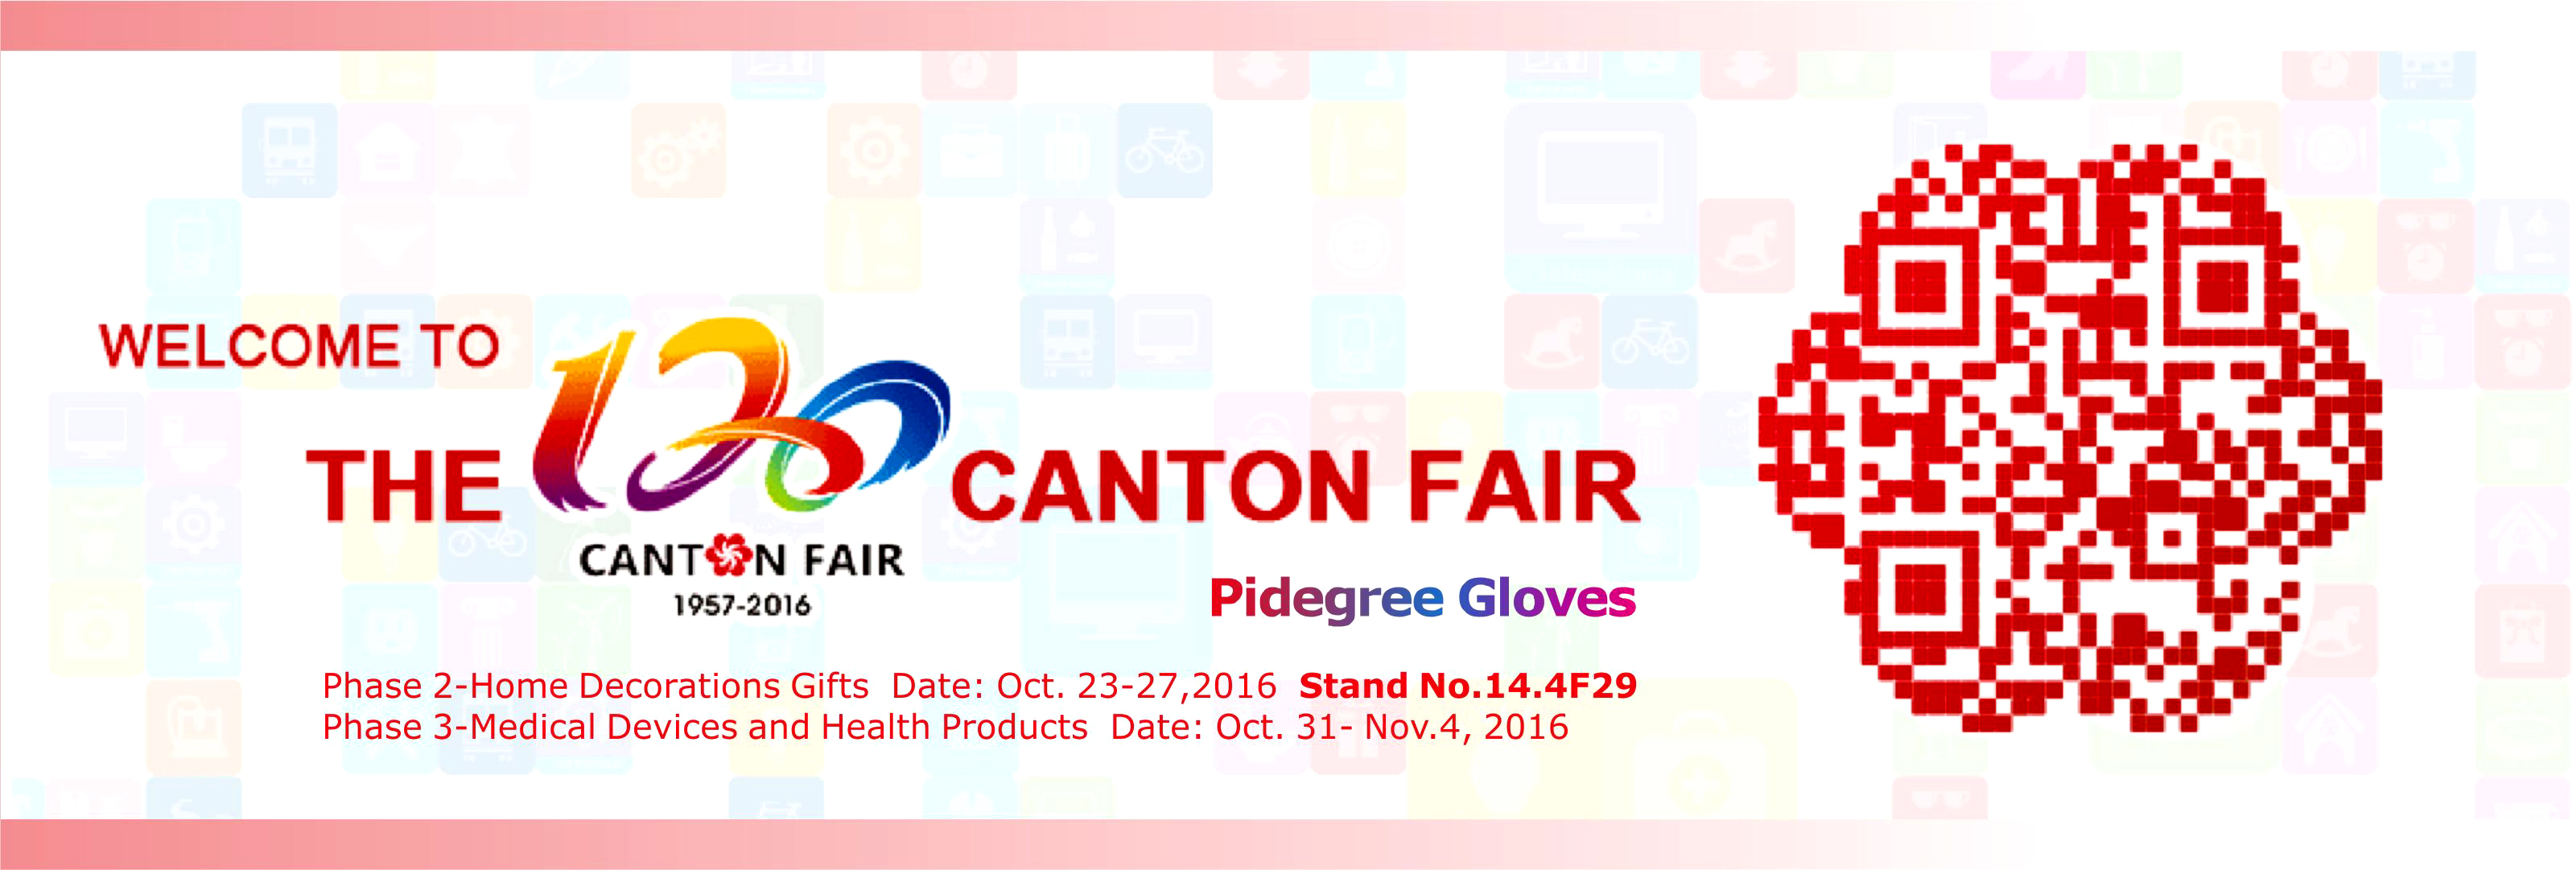 Invite you meet at Canton Fair 2016.10.23-27(120Th)